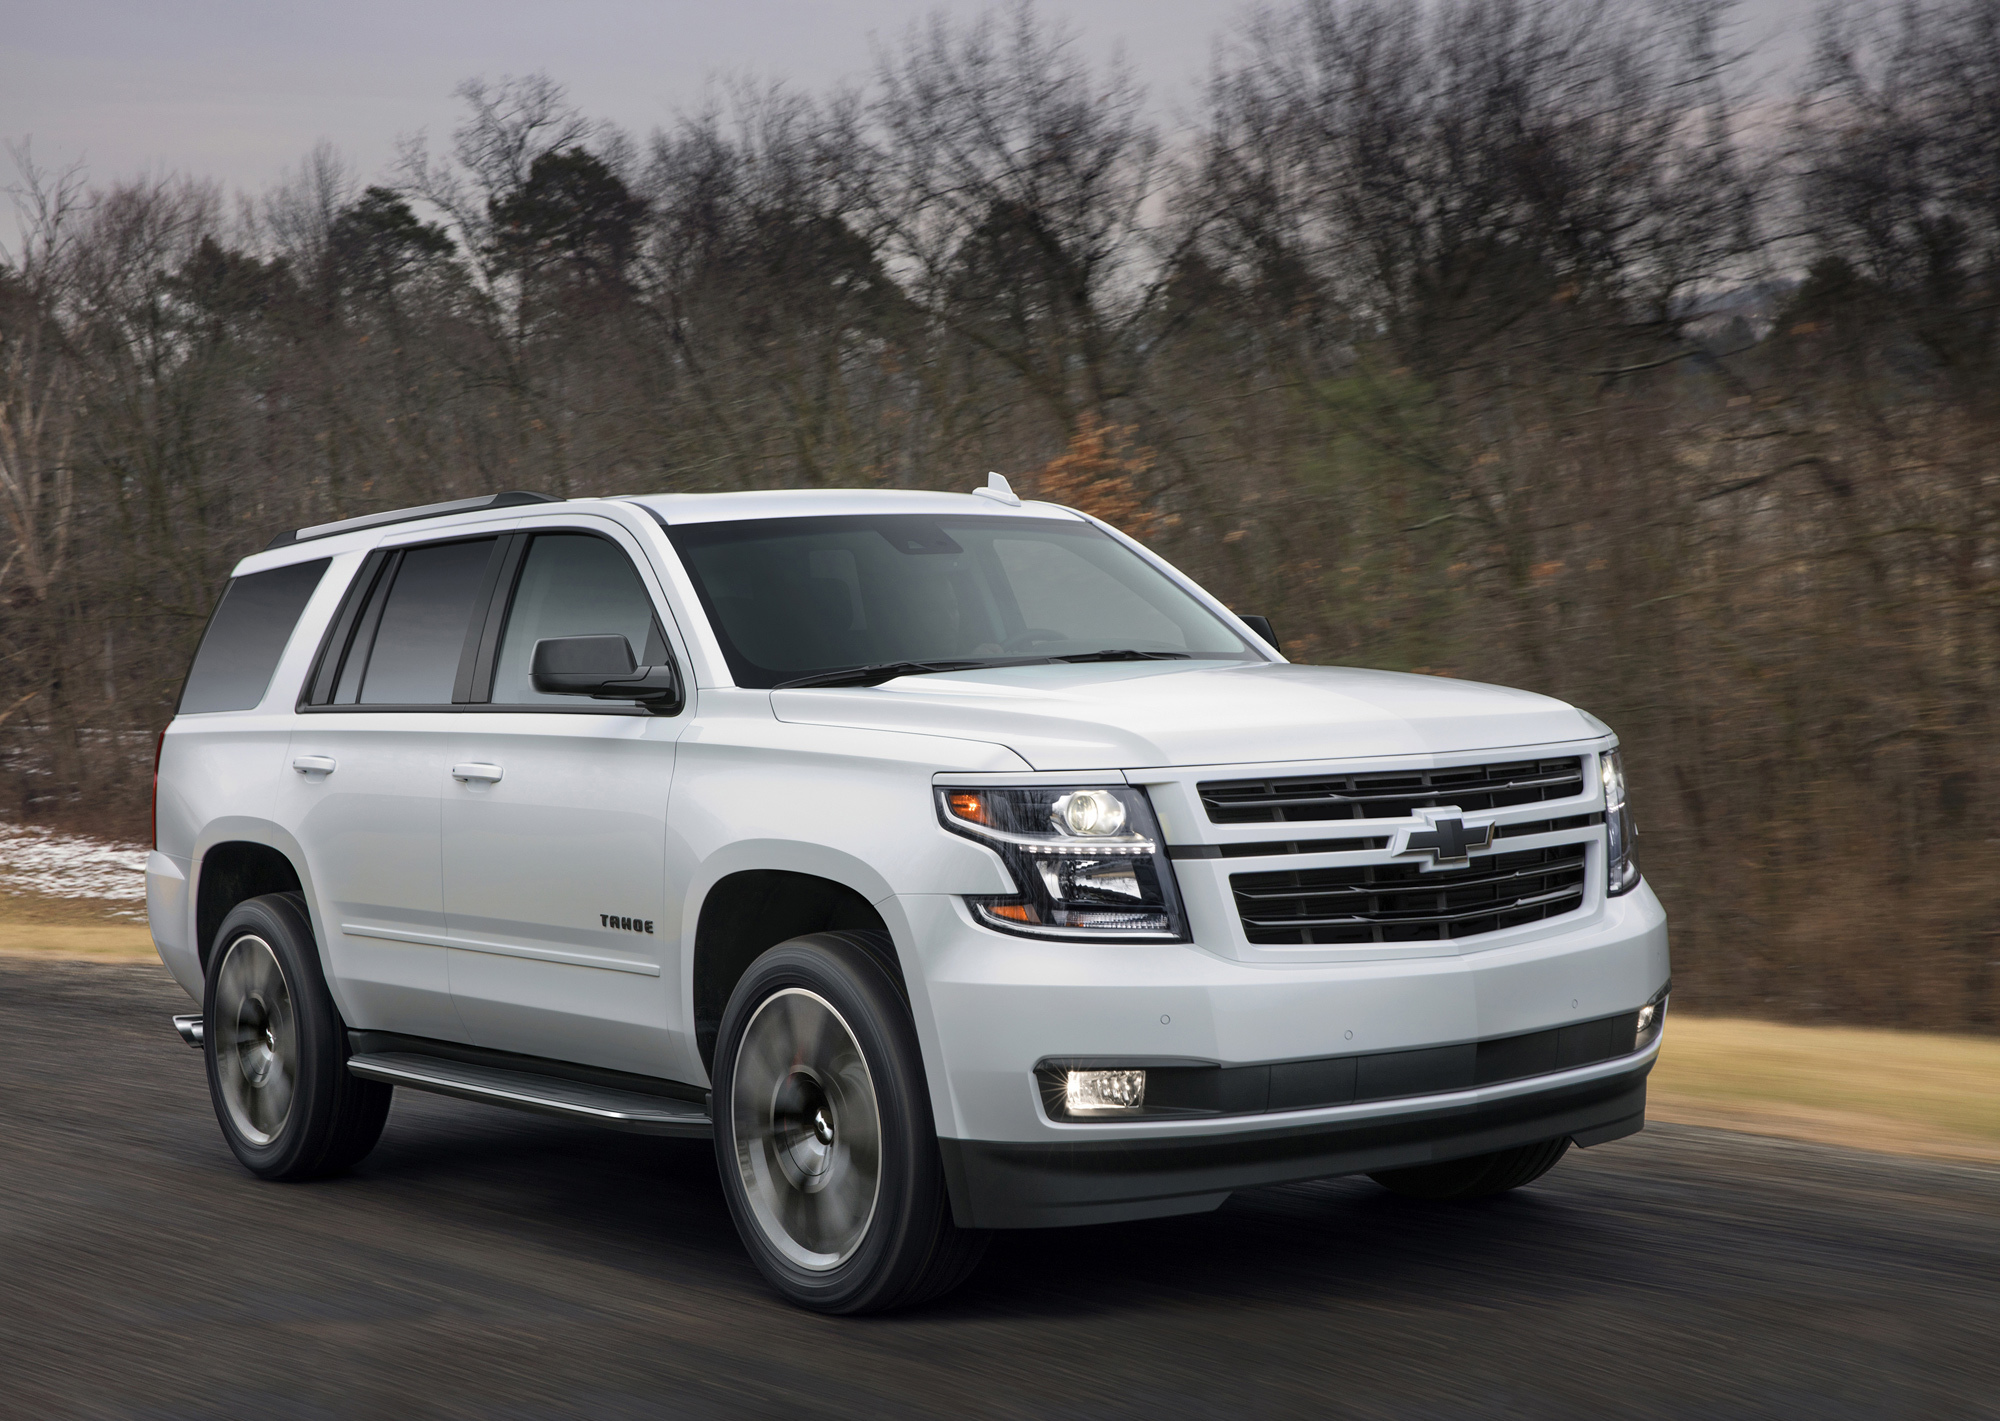 chevrolet tahoe rst wallpapers images photos pictures backgrounds. Black Bedroom Furniture Sets. Home Design Ideas